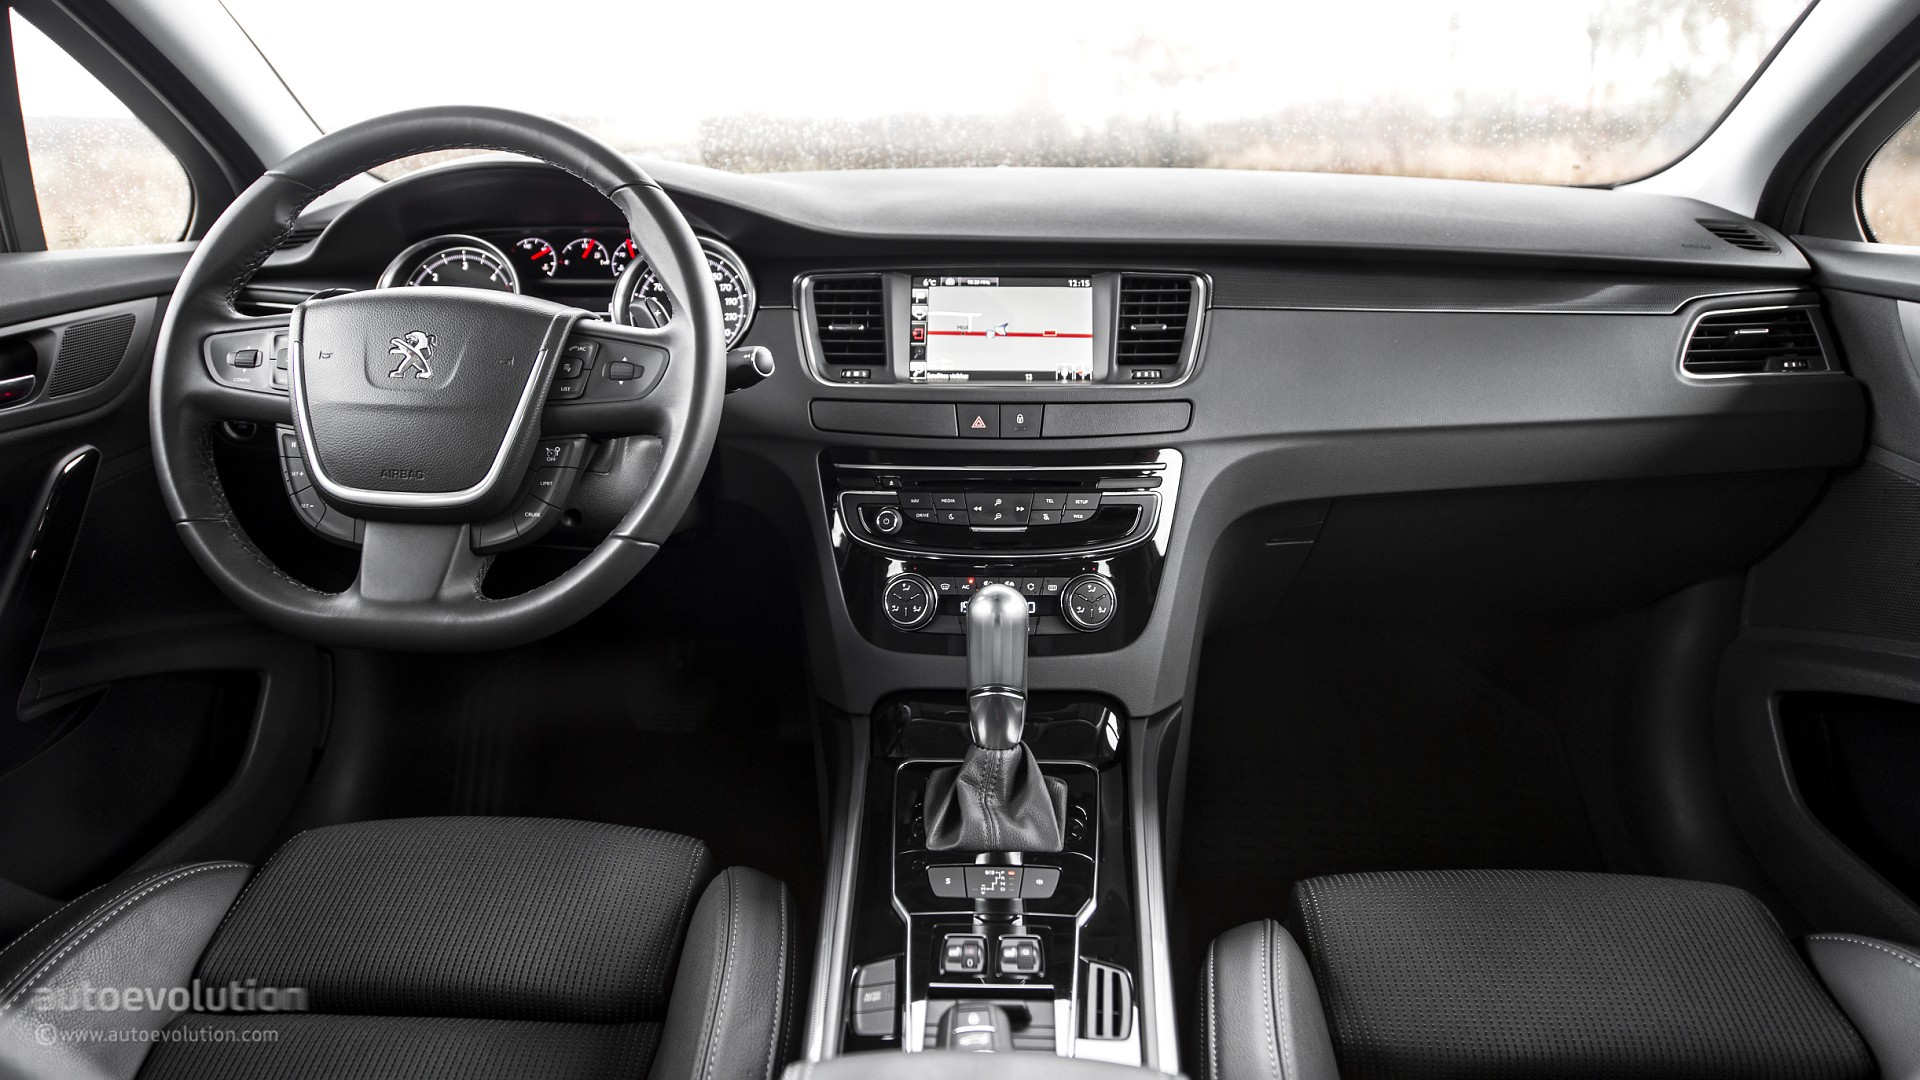 2015 peugeot 508 review autoevolution for Interieur 2015